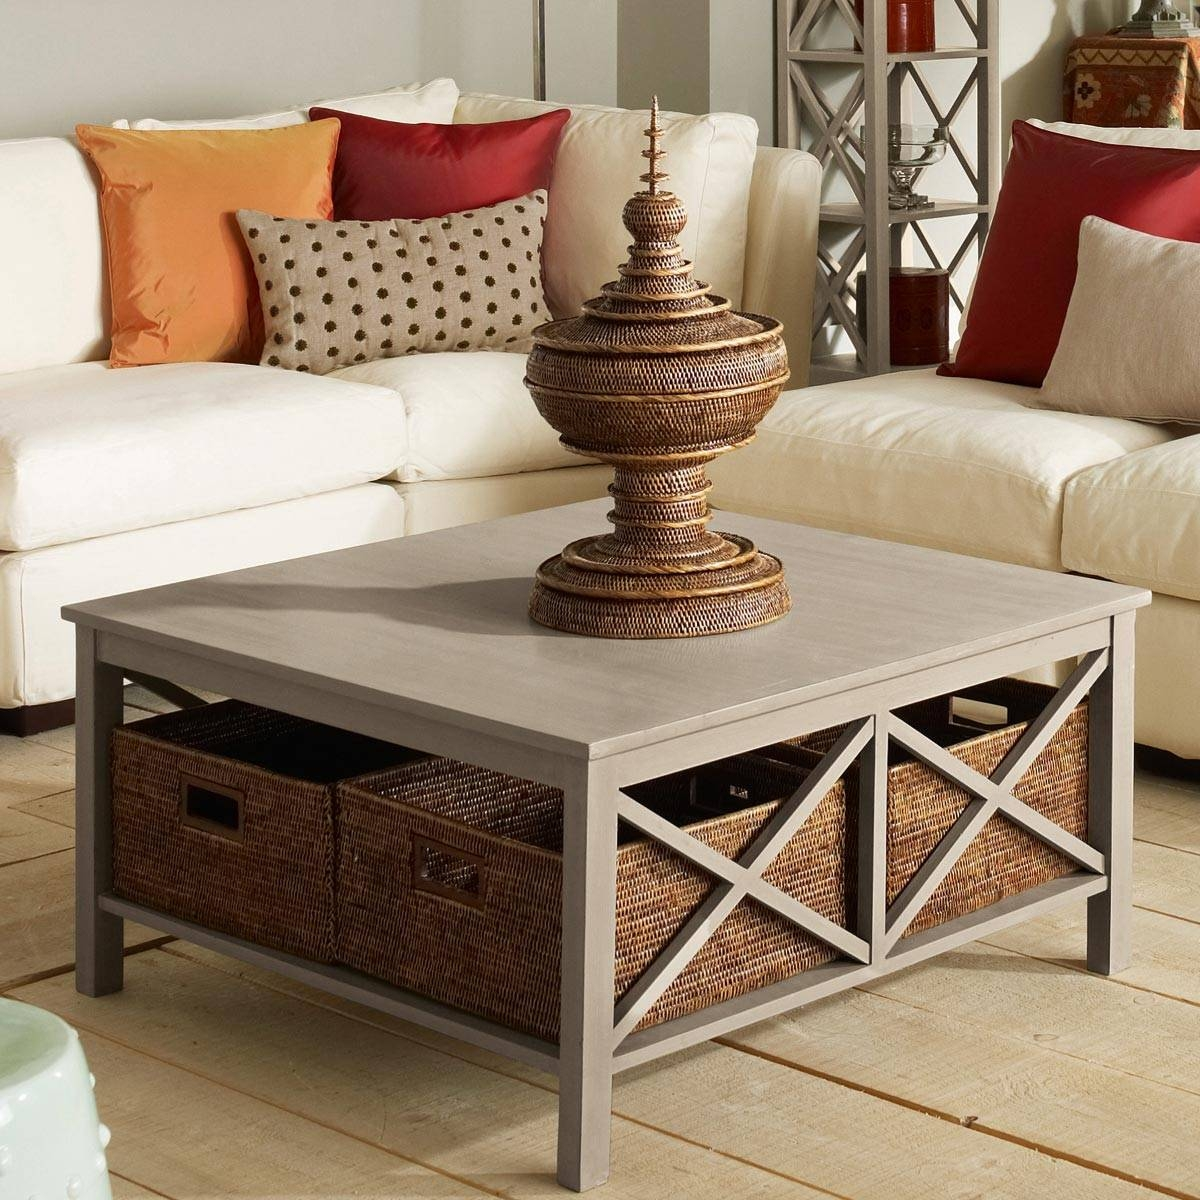 Coffee Table Storage : Efficient Storage Coffee Table – Home with regard to Square Coffee Table Storages (Image 5 of 30)